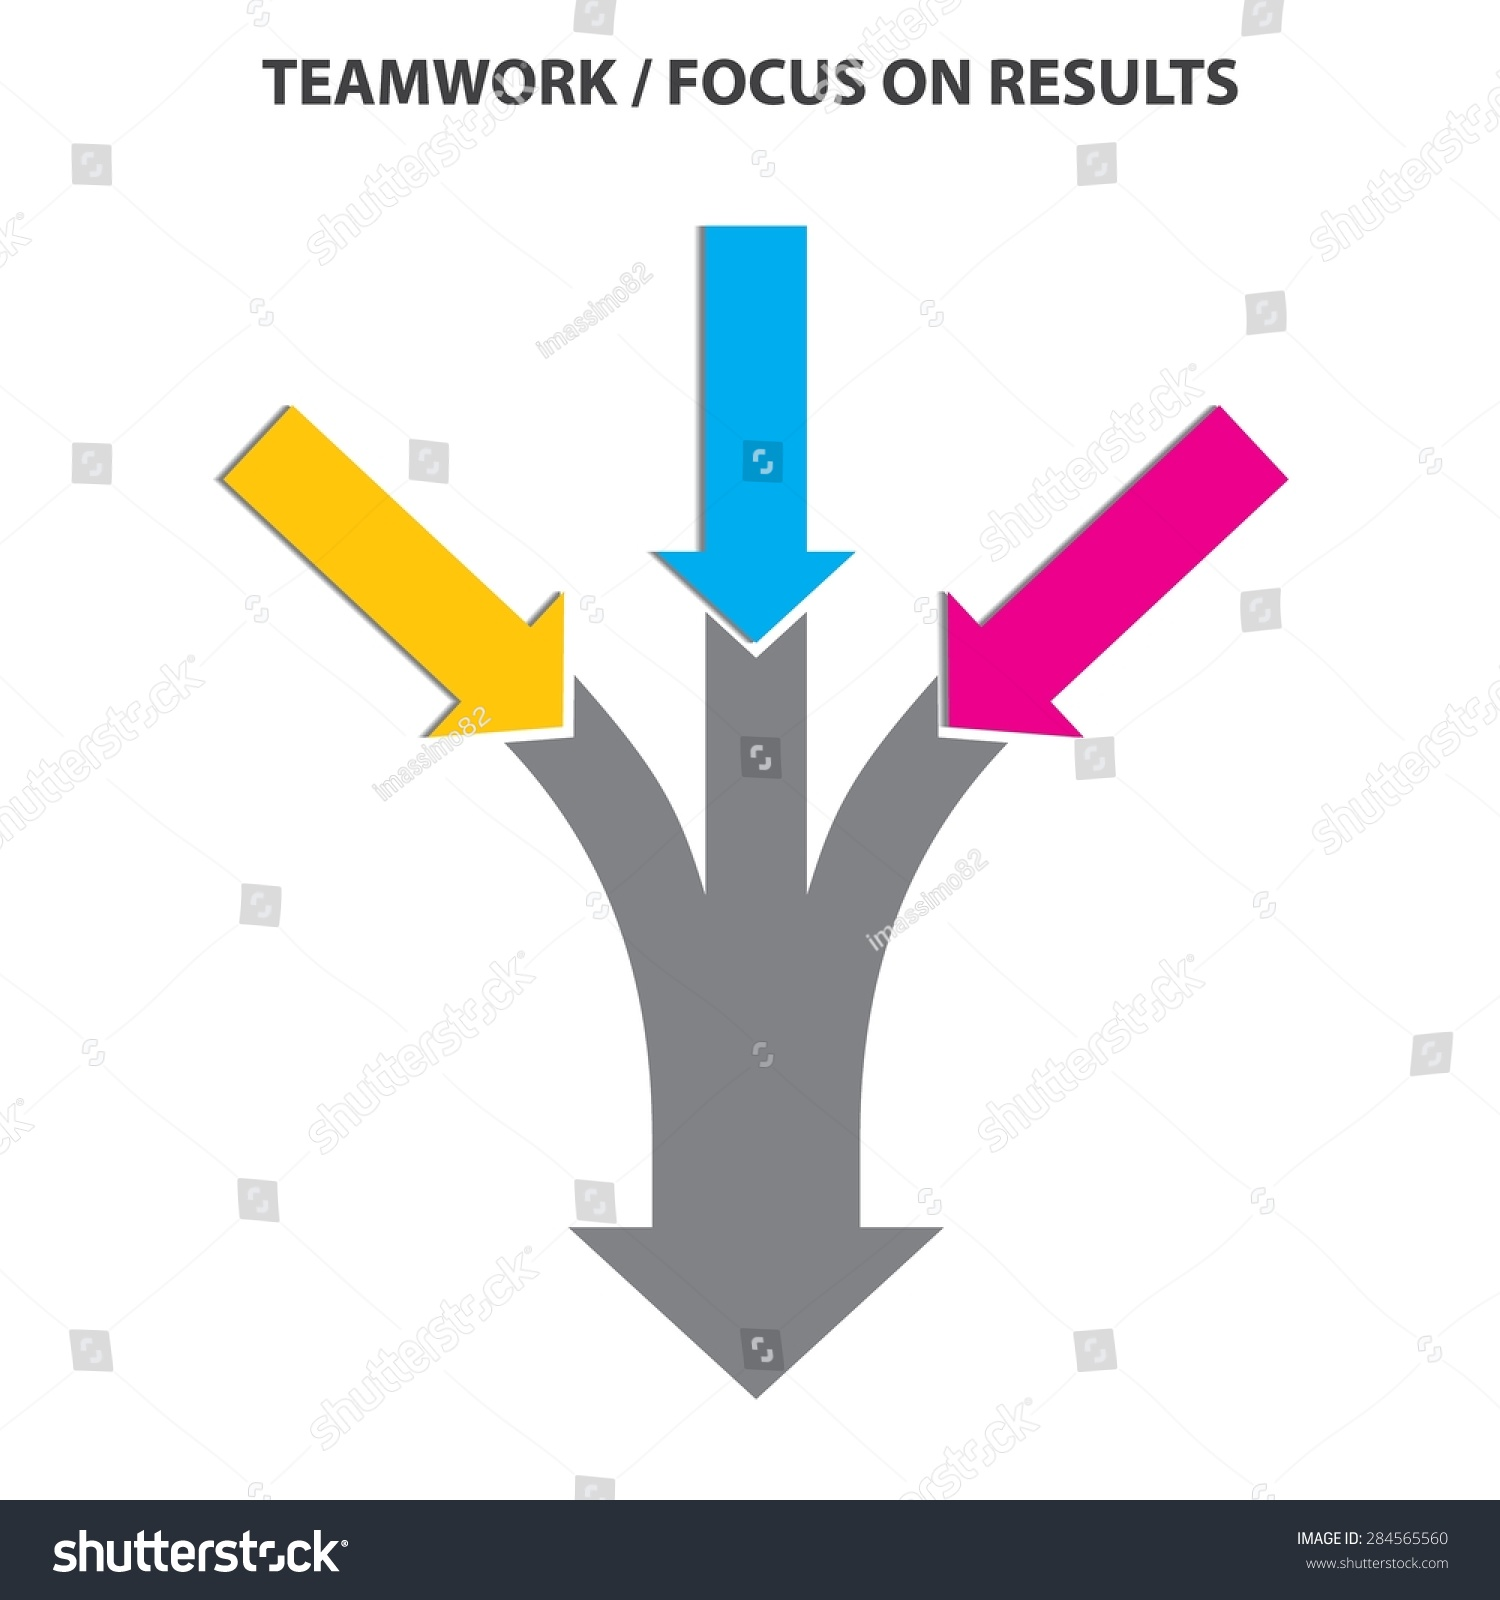 Teamwork And Focus On Results - 3 In 1 Vertical Converging ...